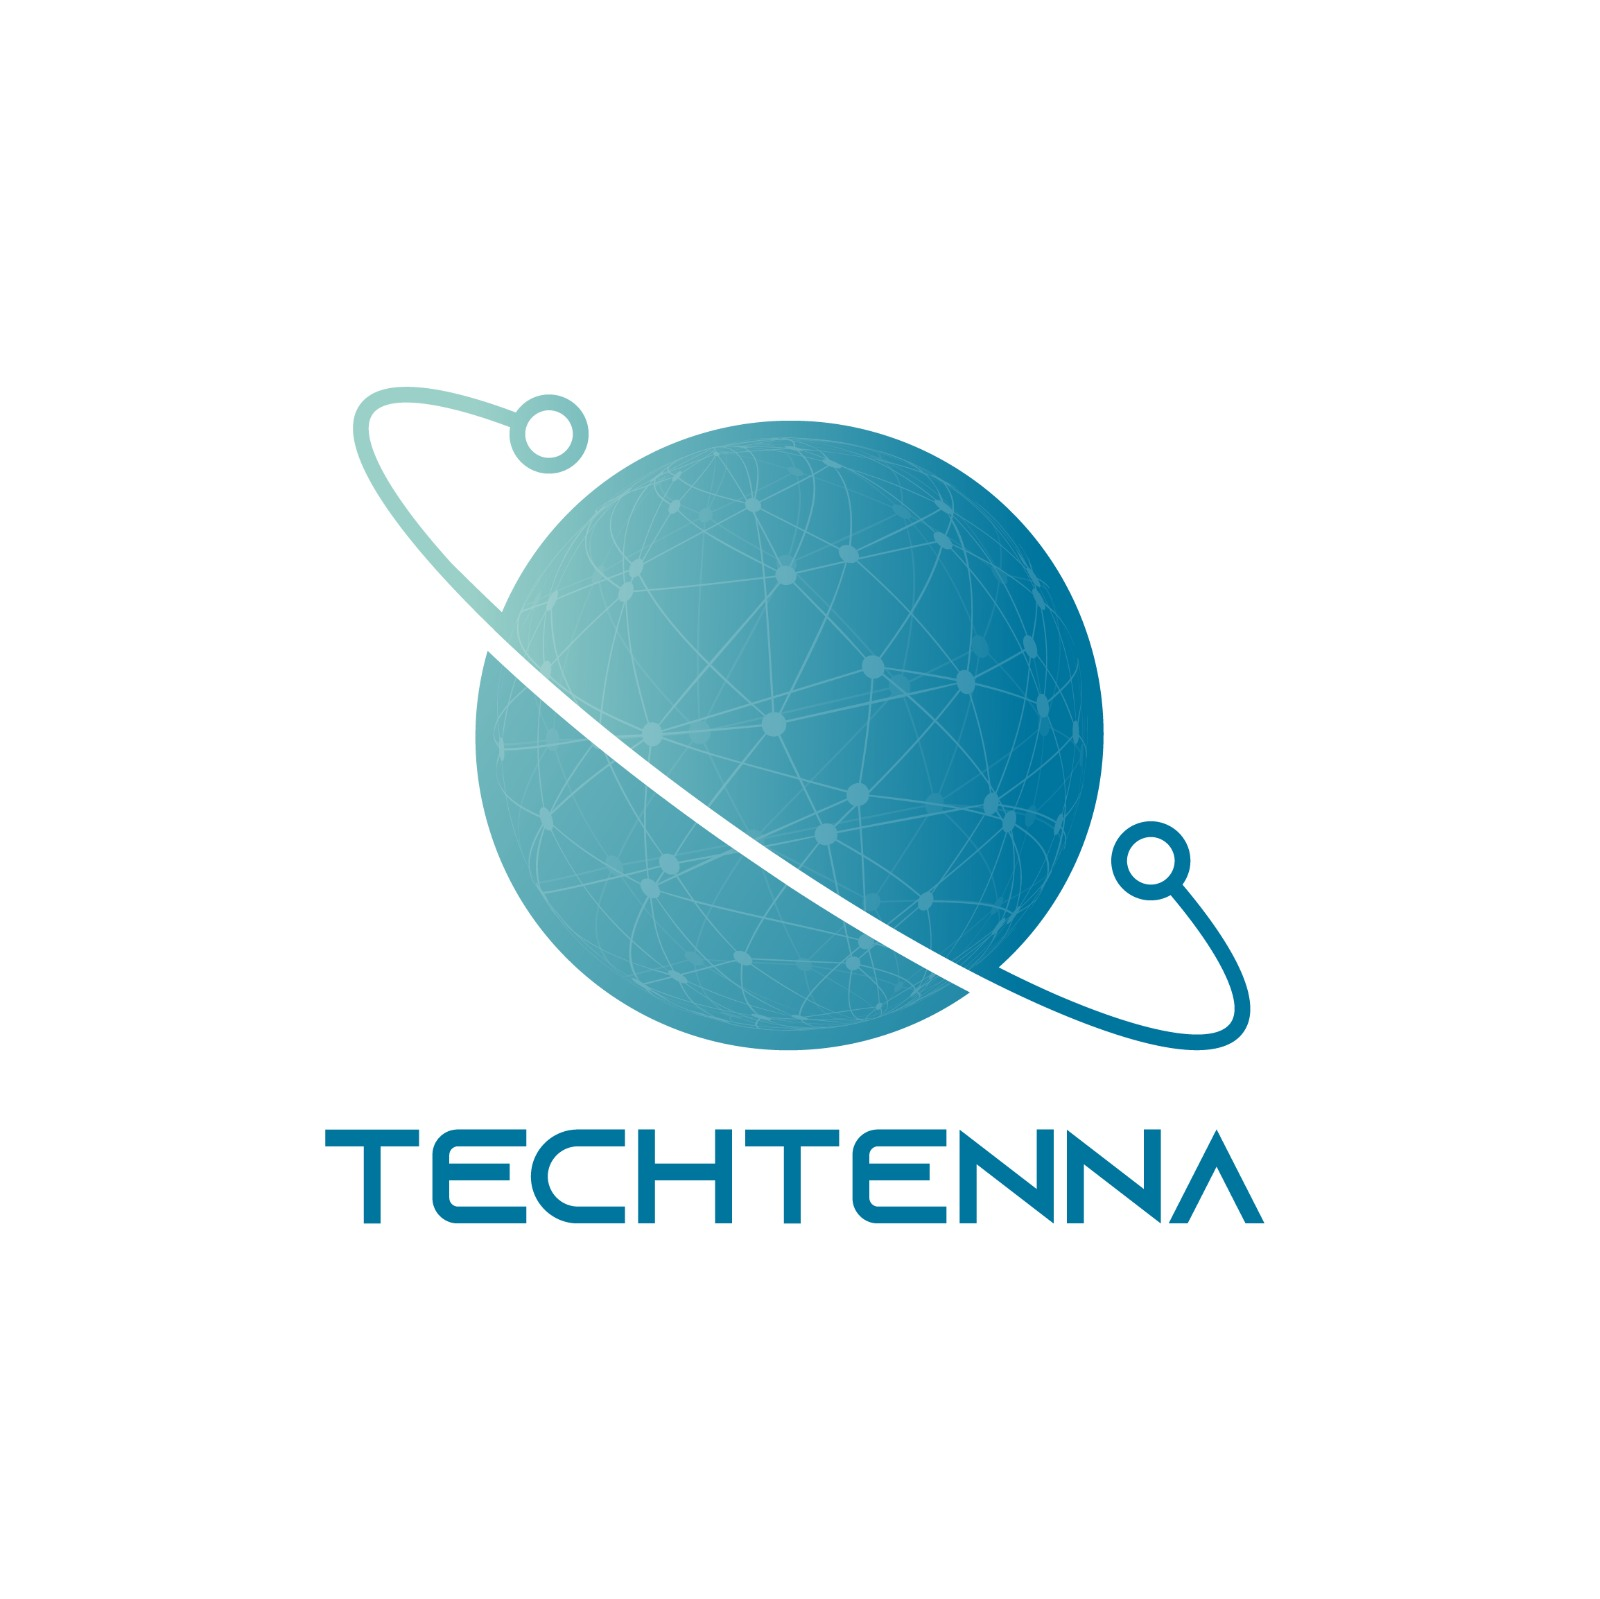 Techtenna